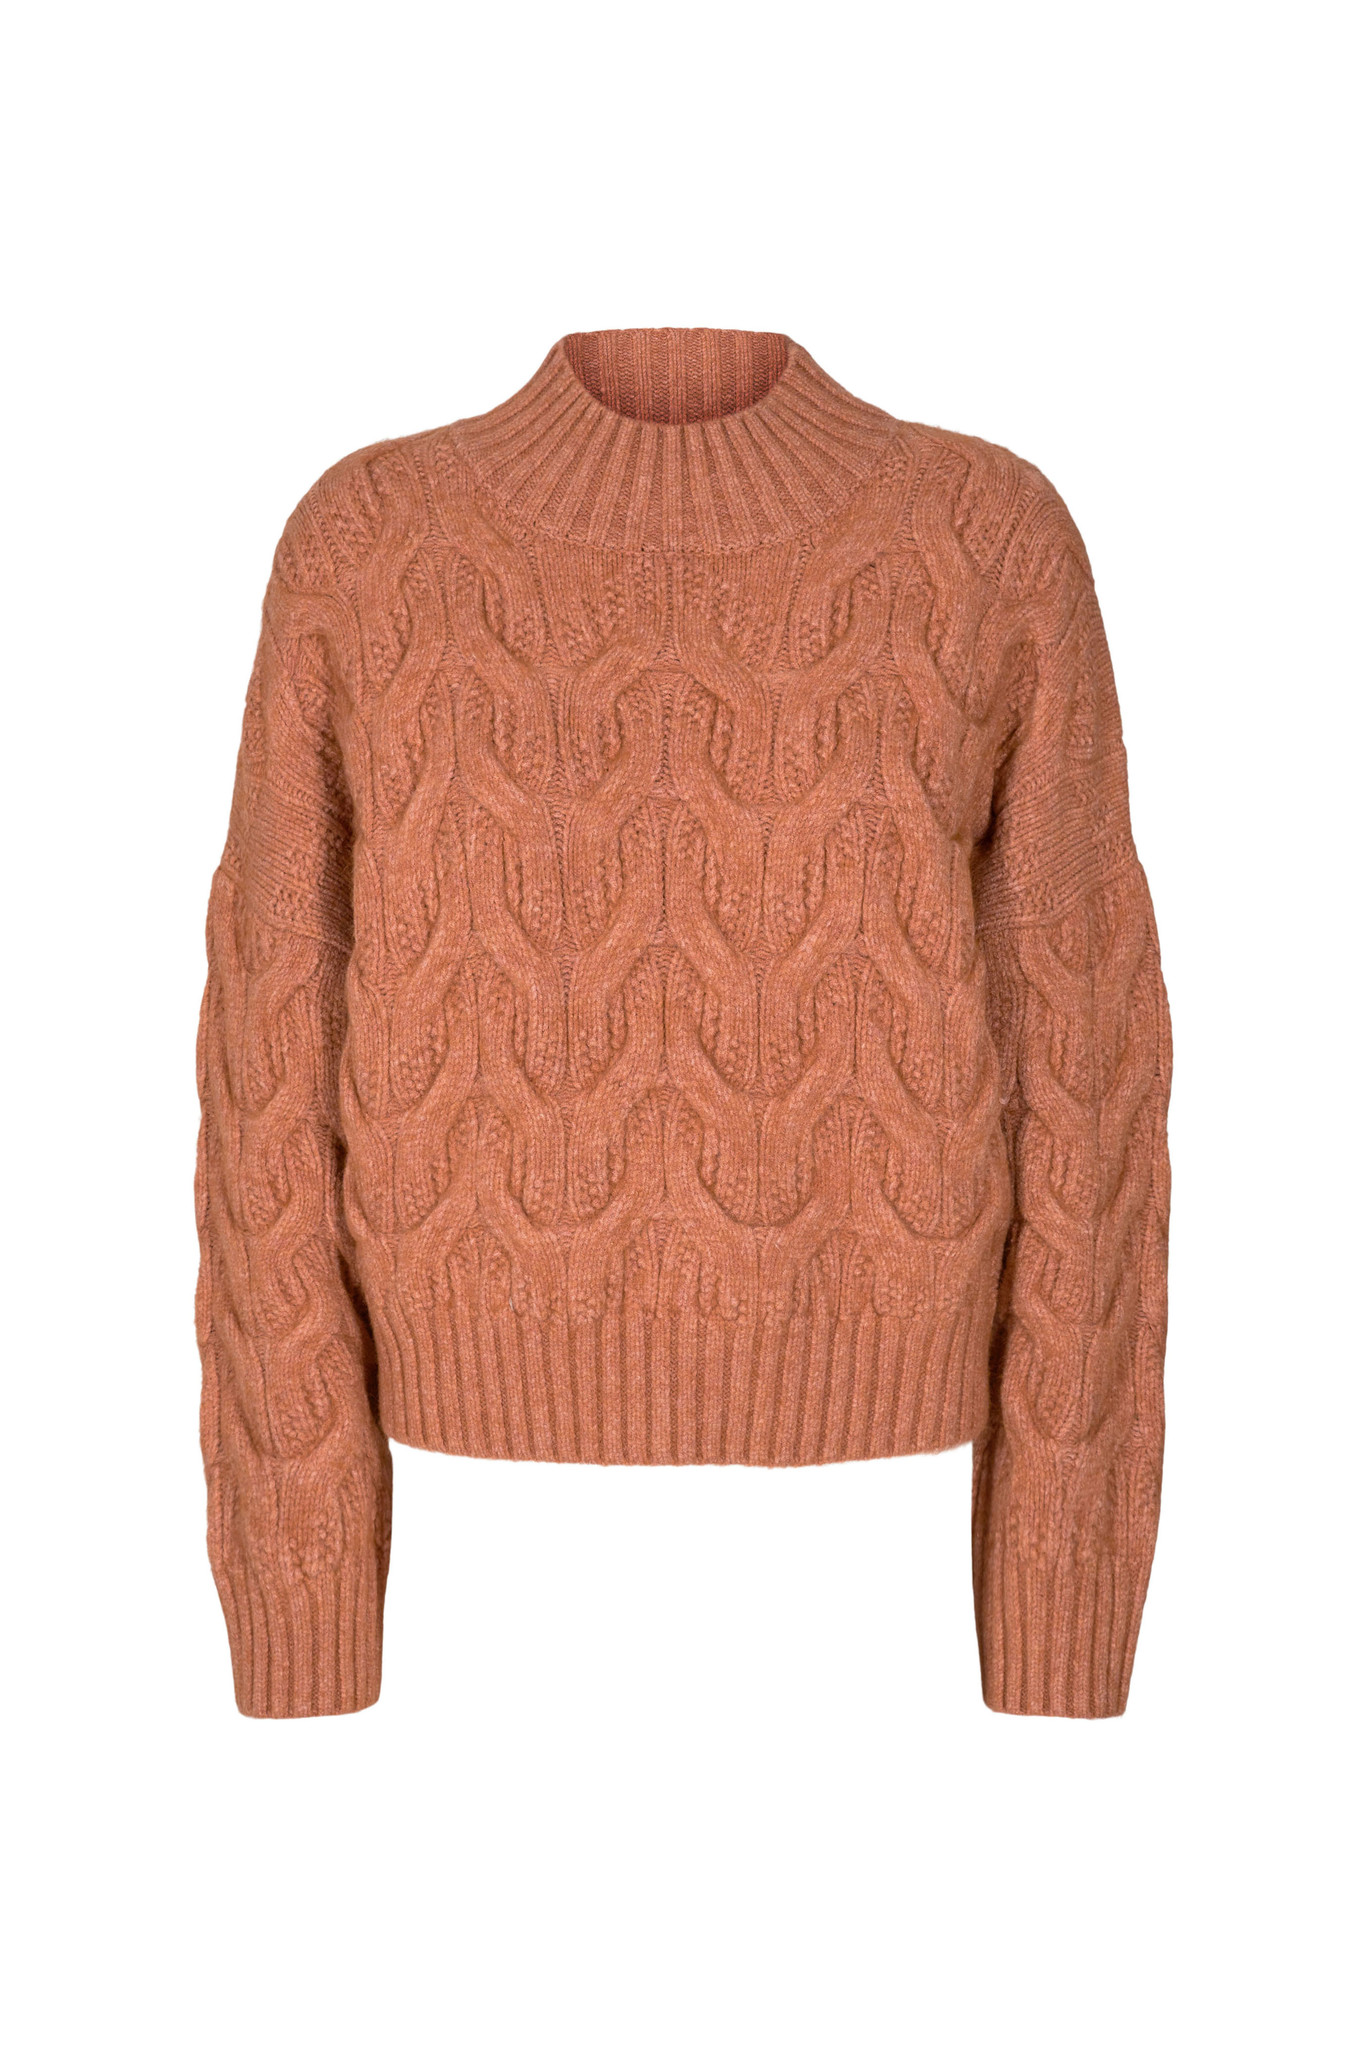 Co Couture Jenesse Cable Knit - Cantaloupe